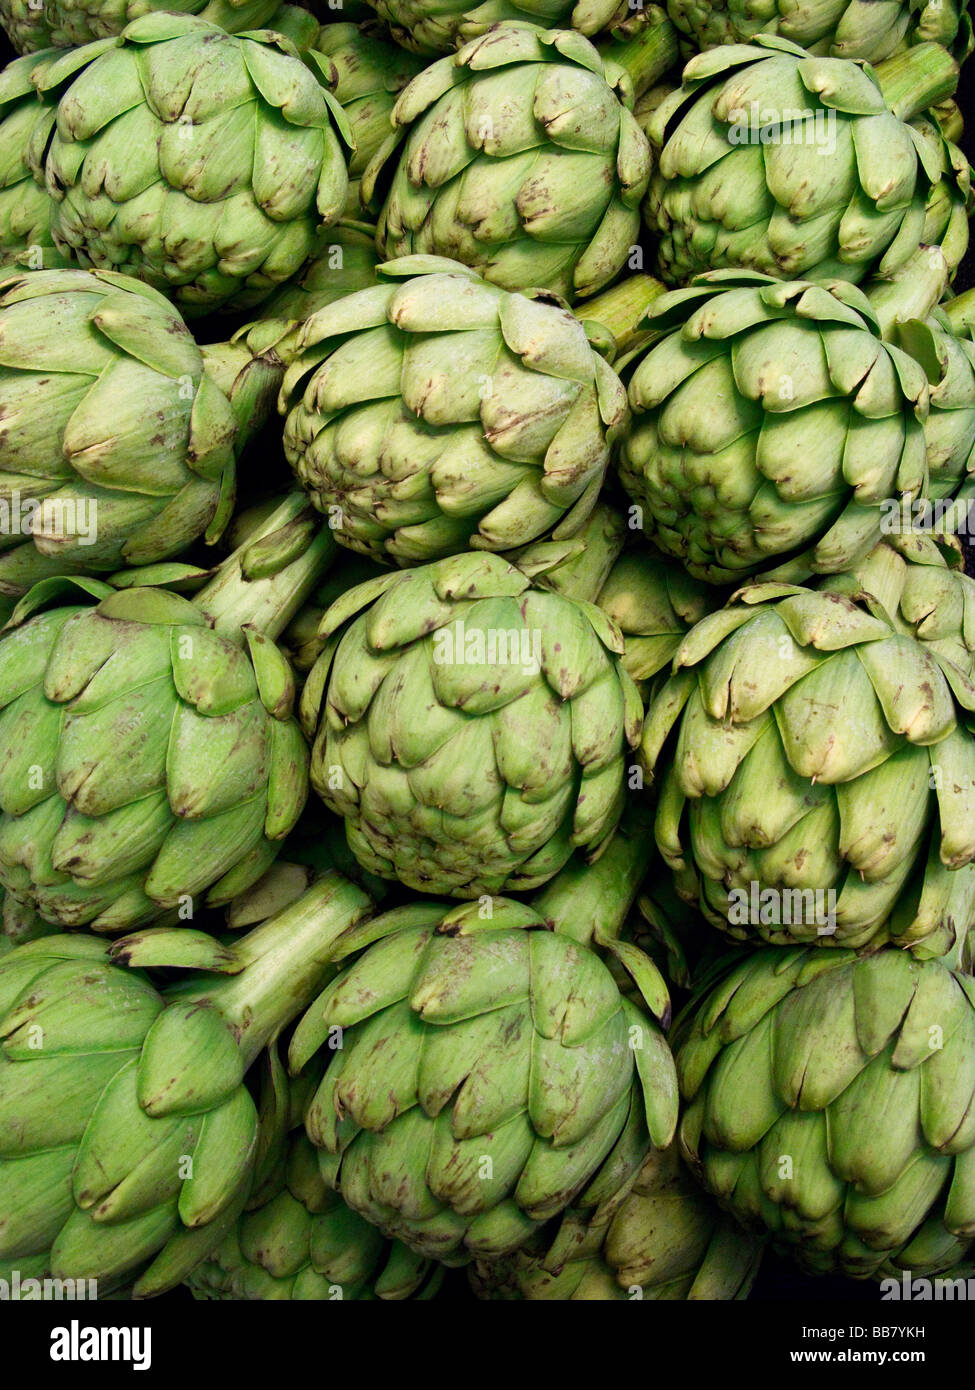 Ripe Artichokes on display in food market Seattle WA USA Stock Photo